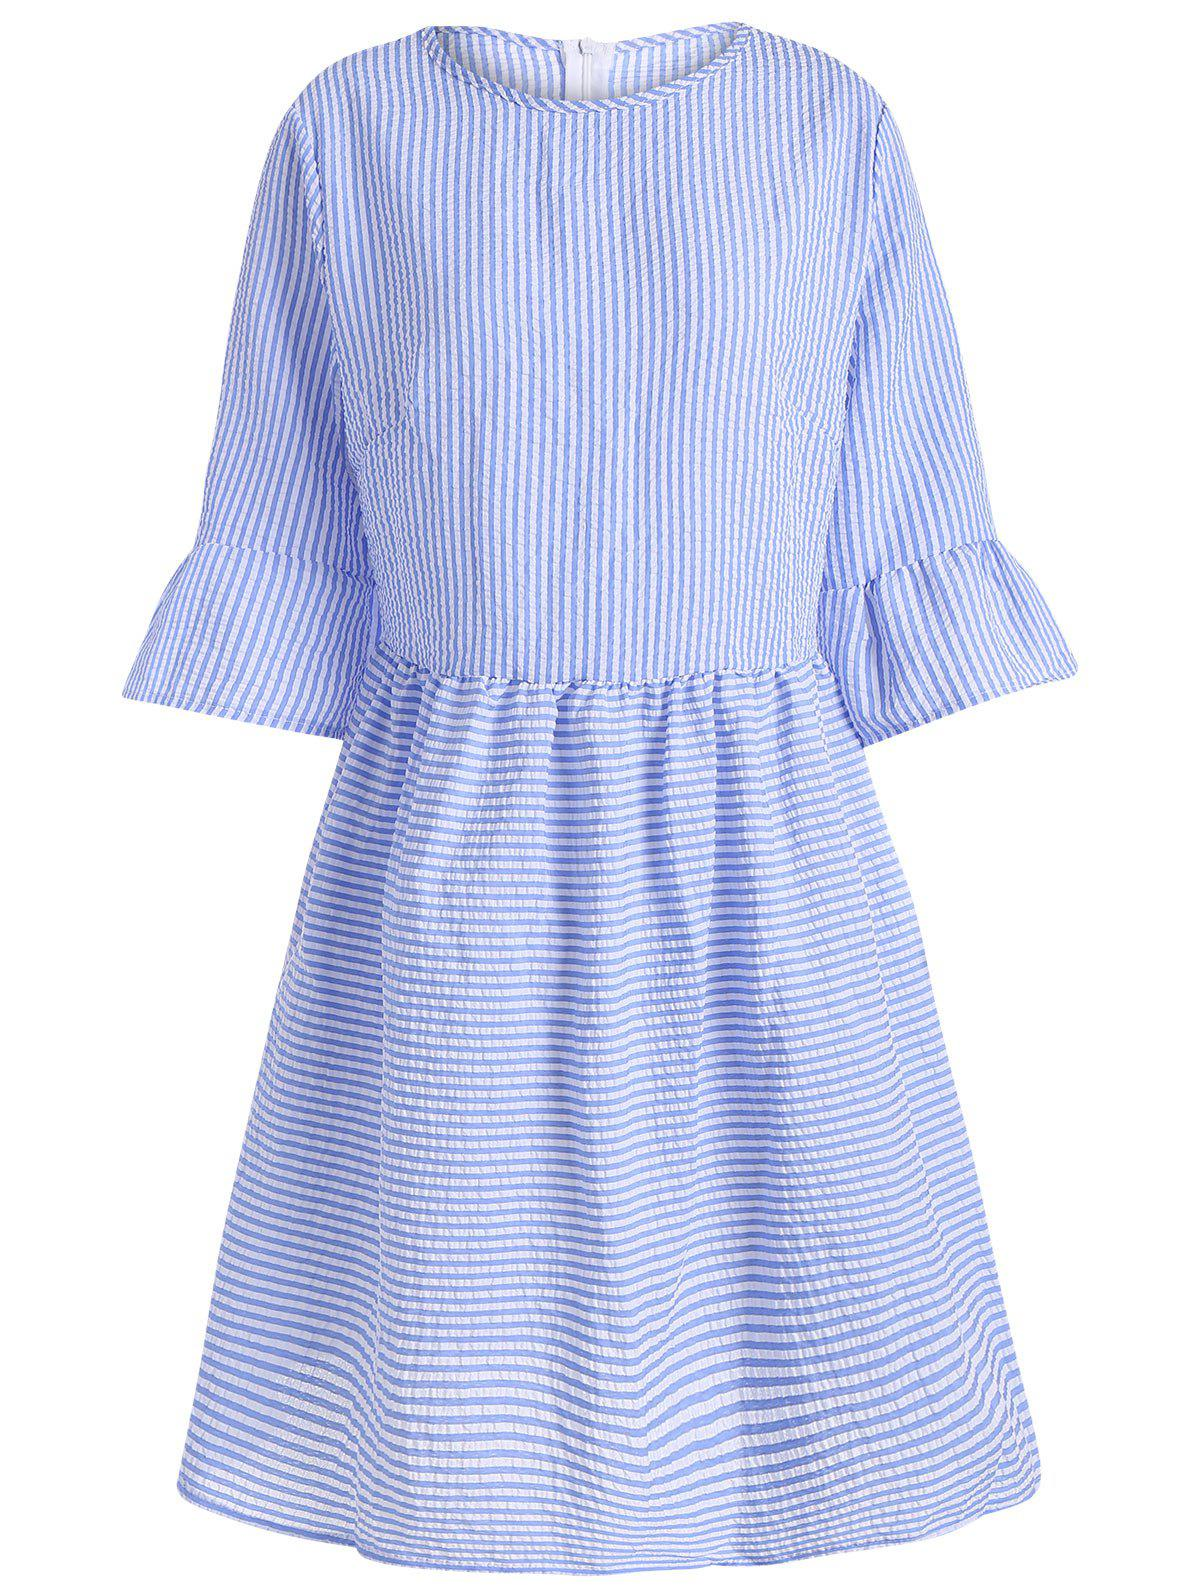 Flare Sleeve Casual Striped Dress - BLUE S